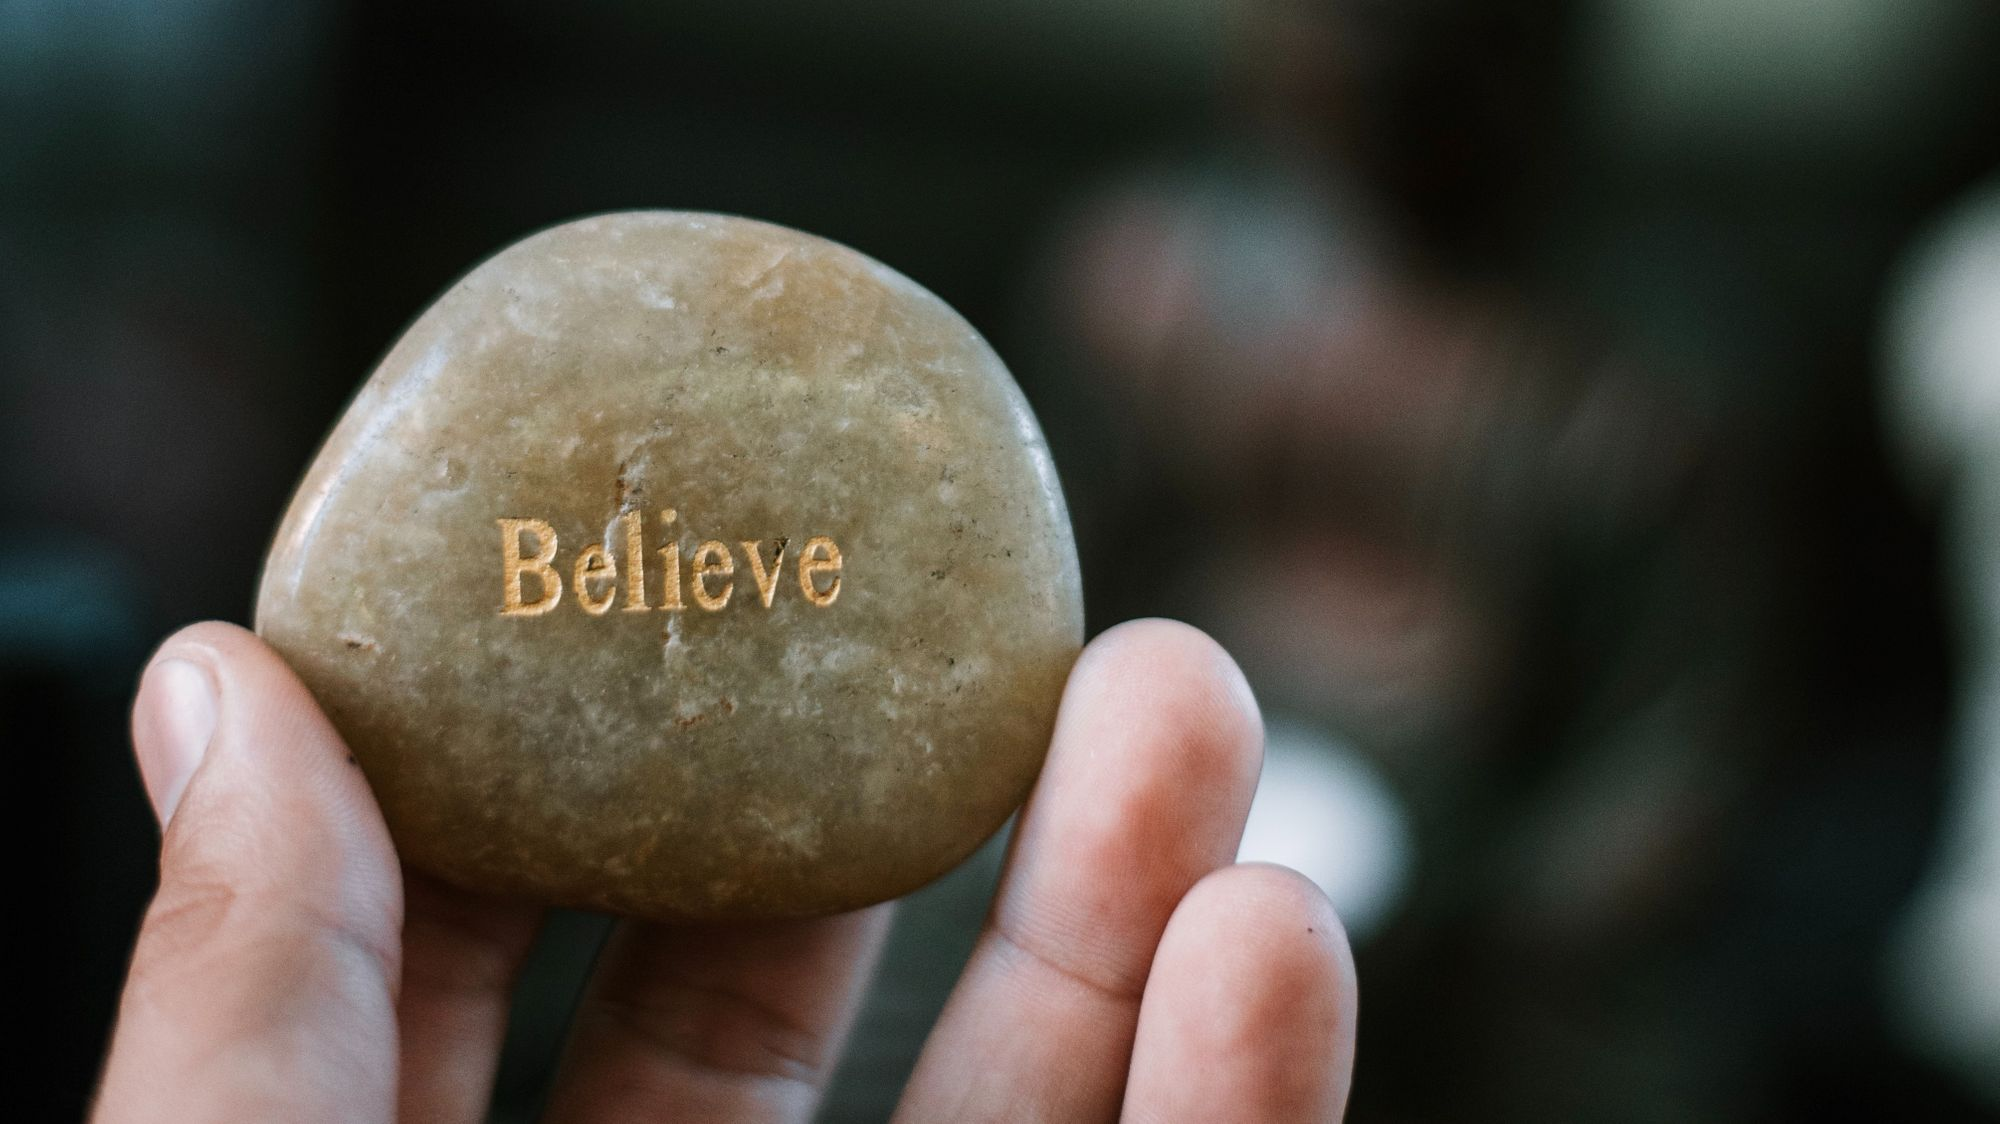 person holding brown stone with believe print photo – Free Human Image on Unsplash